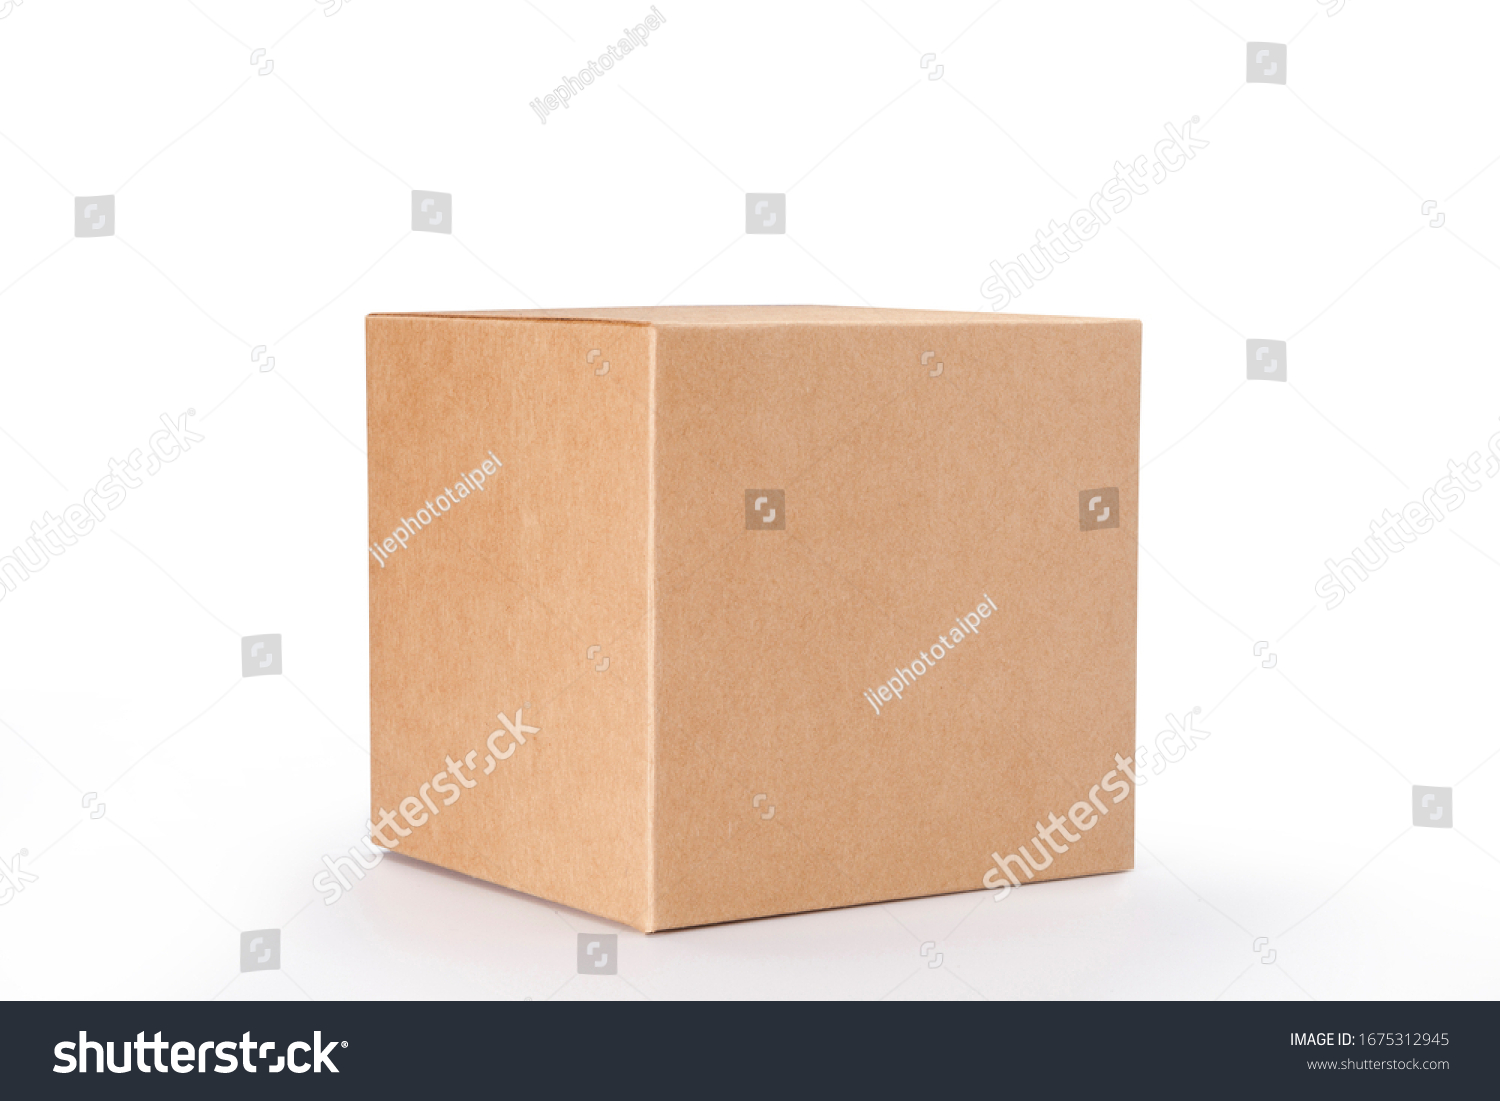 Brown cardboard box isolated on white background with clipping path. Suitable for food, cosmetic or medical packaging. #1675312945